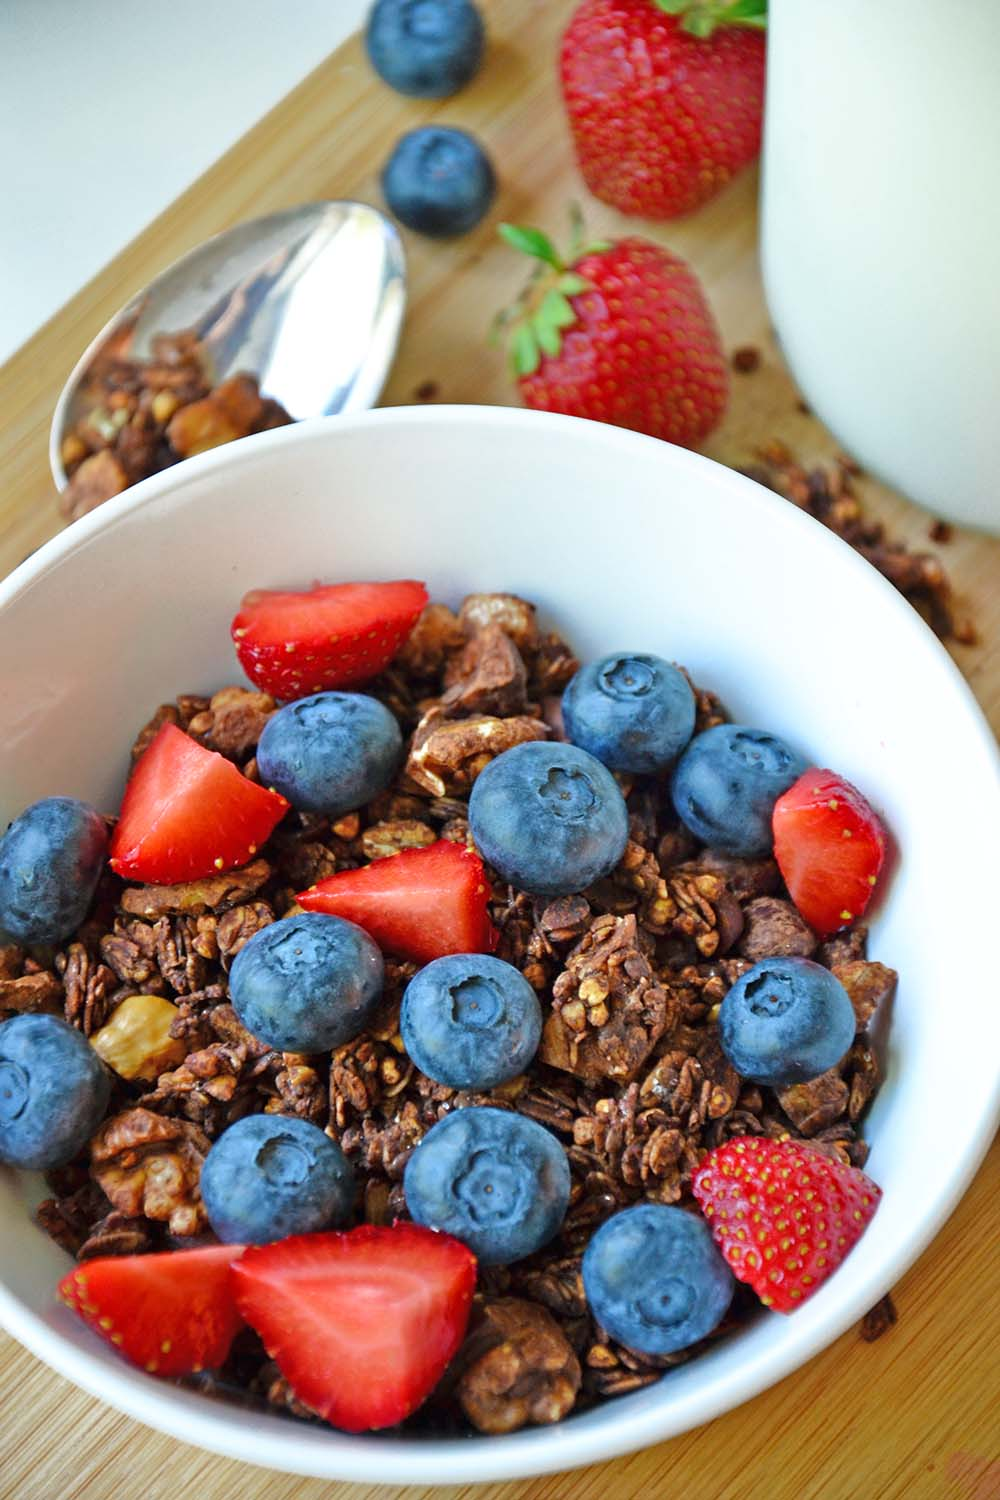 Crunchy chocolate buckwheat granola